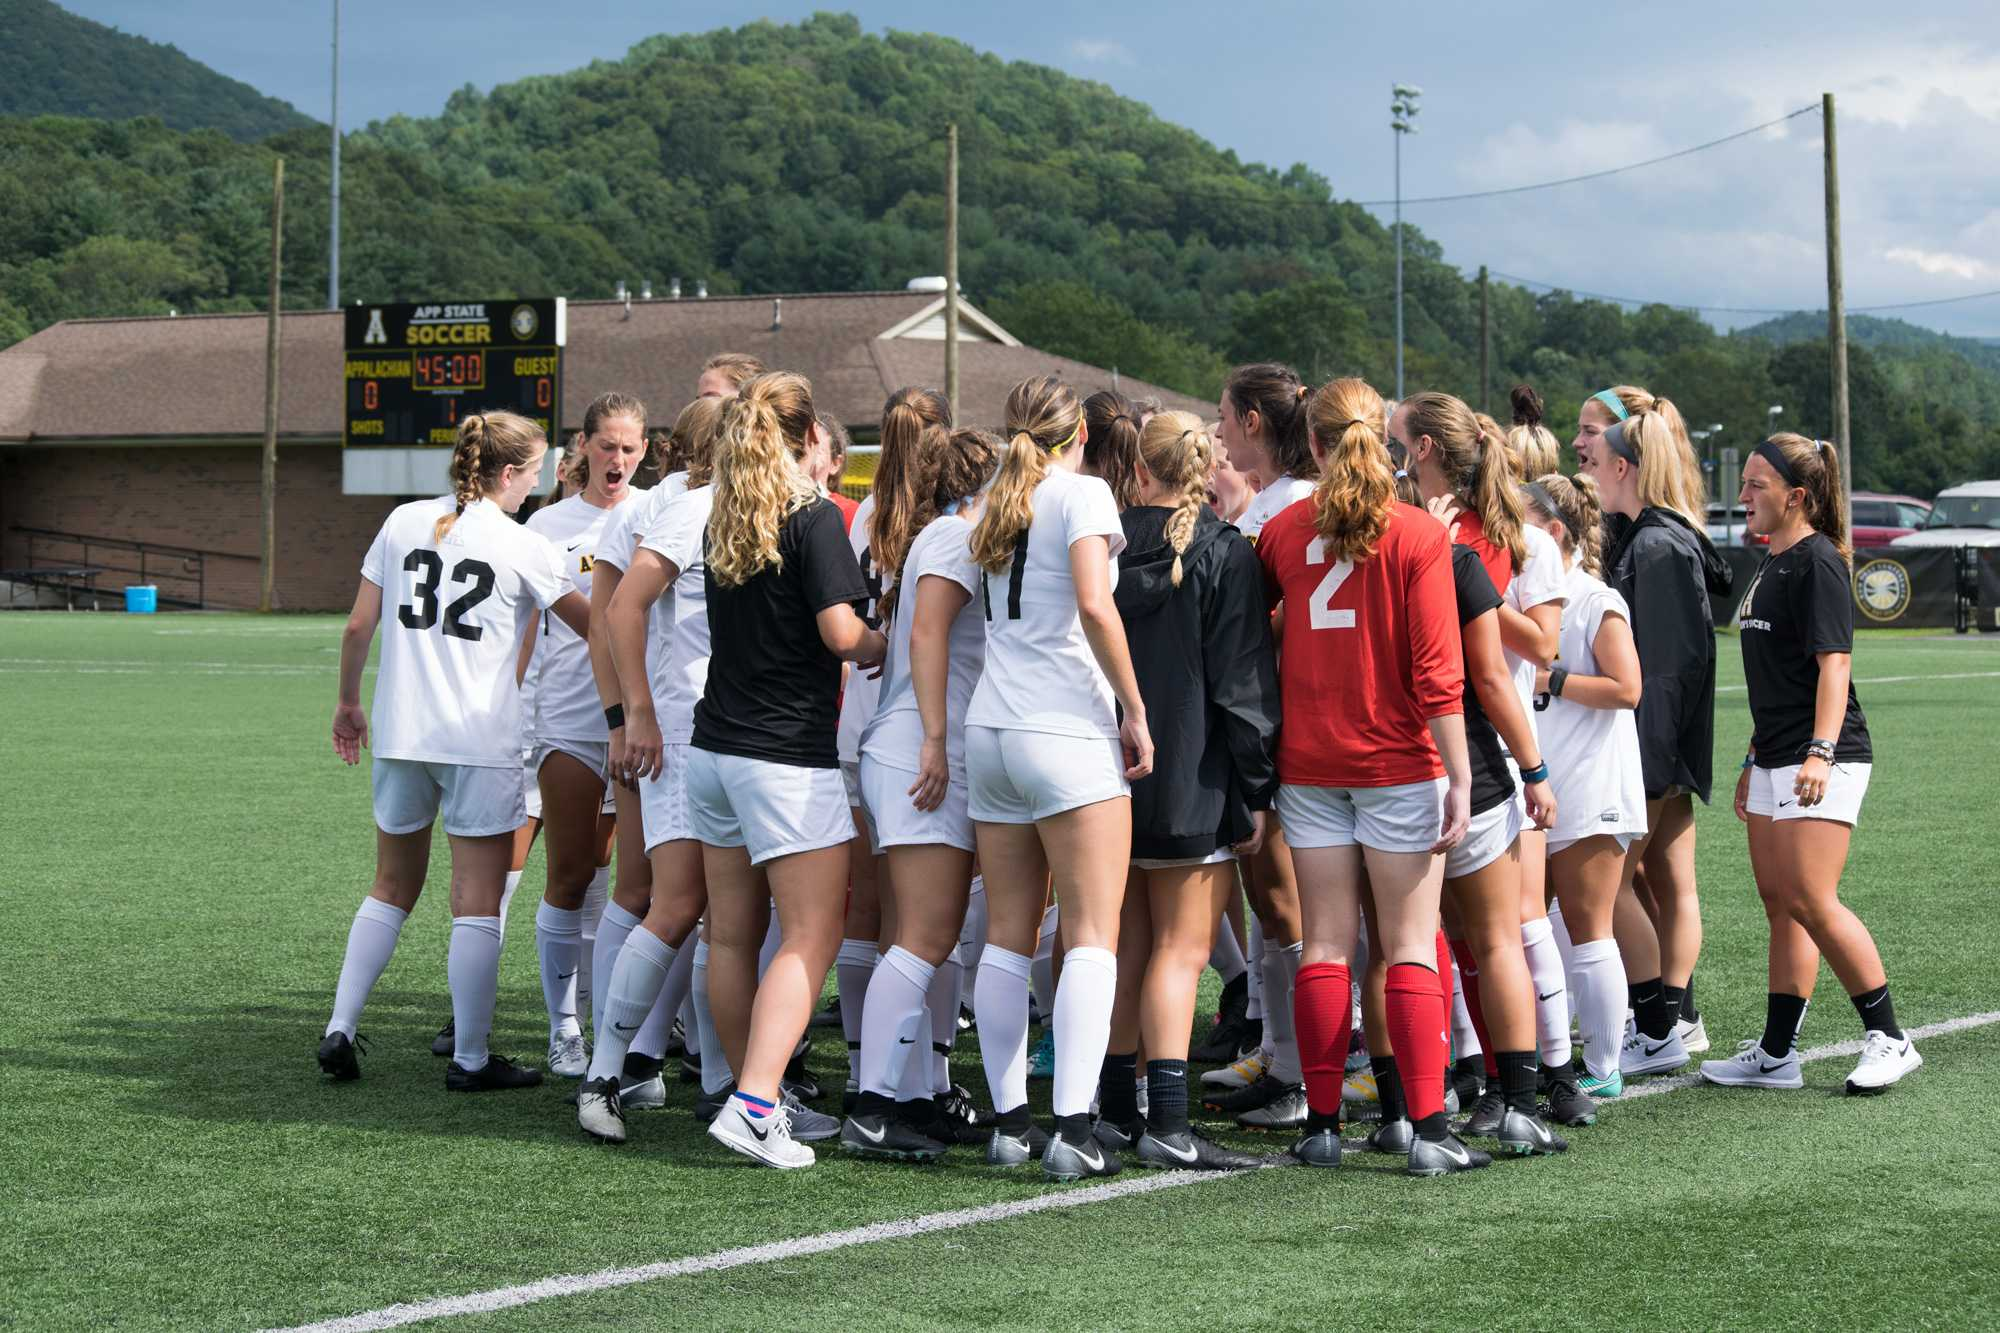 Captains bringing leadership and family mindset to App State women's soccer